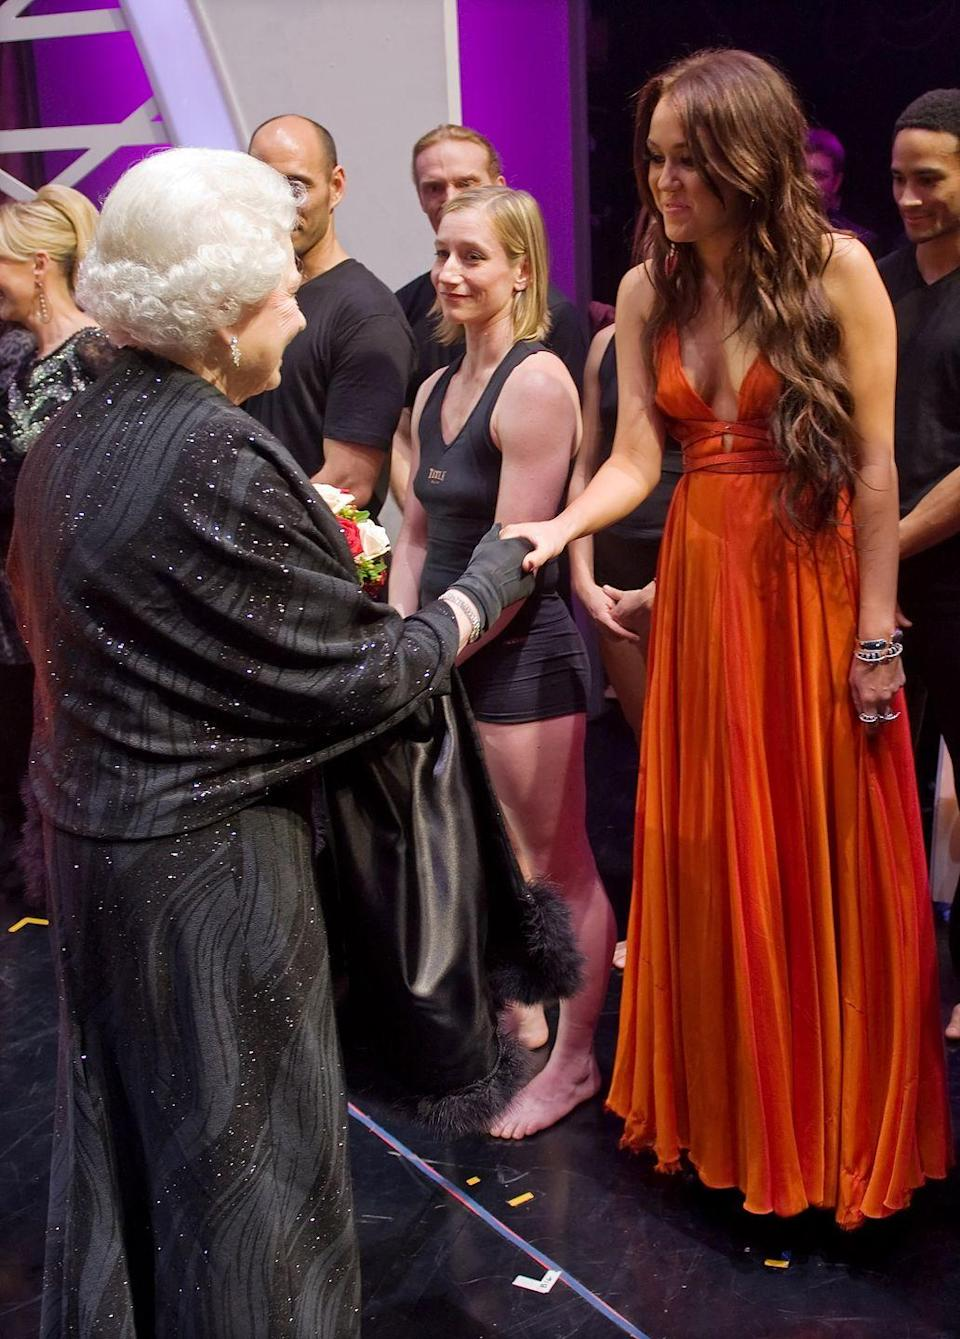 <p>We're not sure what Queen Elizabeth would think of Miley's fashion choices today, but back in 2009, she seemed to approve of the star's burnt orange gown.</p>